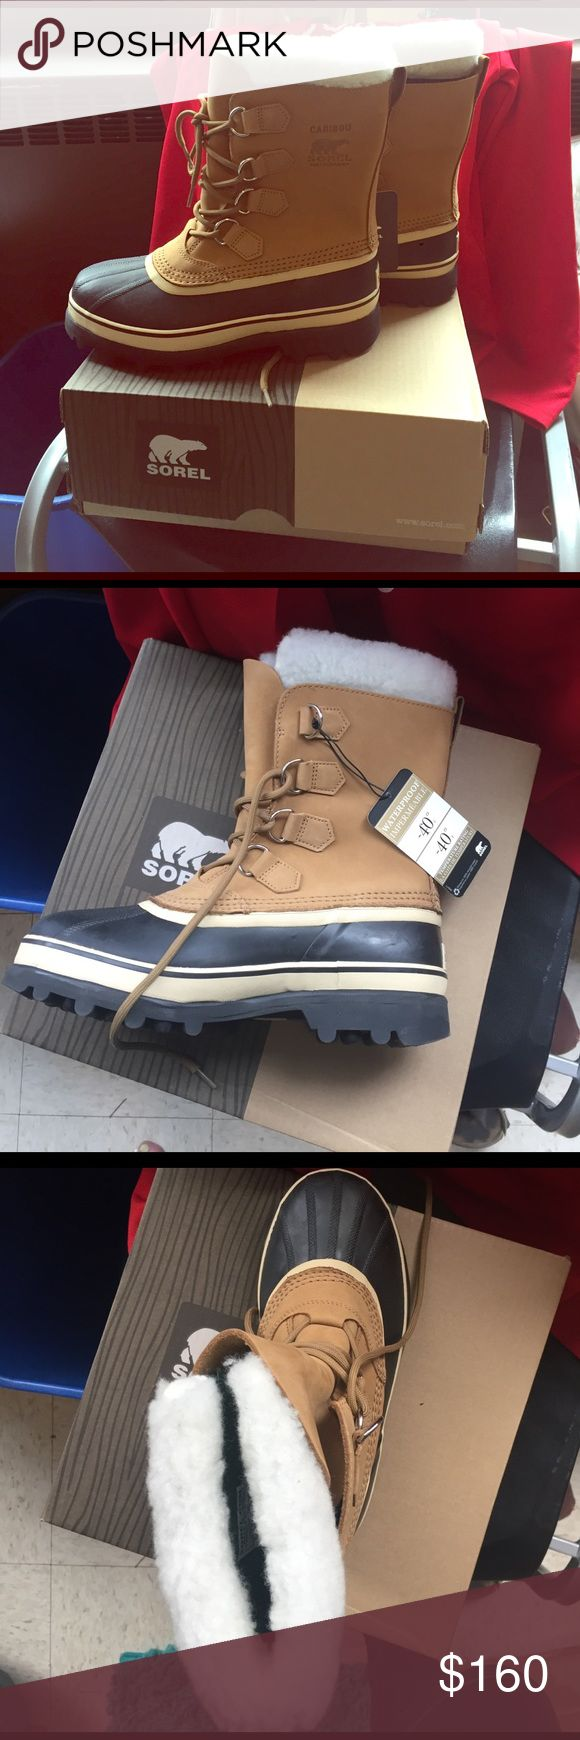 Sorel Caribou Boot - Women's Boot Size 7.5 Brand new never worn size 7.5 sorel boots. Perfect condition. Color is buff. Waterproof winter boots. Sorel Shoes Winter & Rain Boots